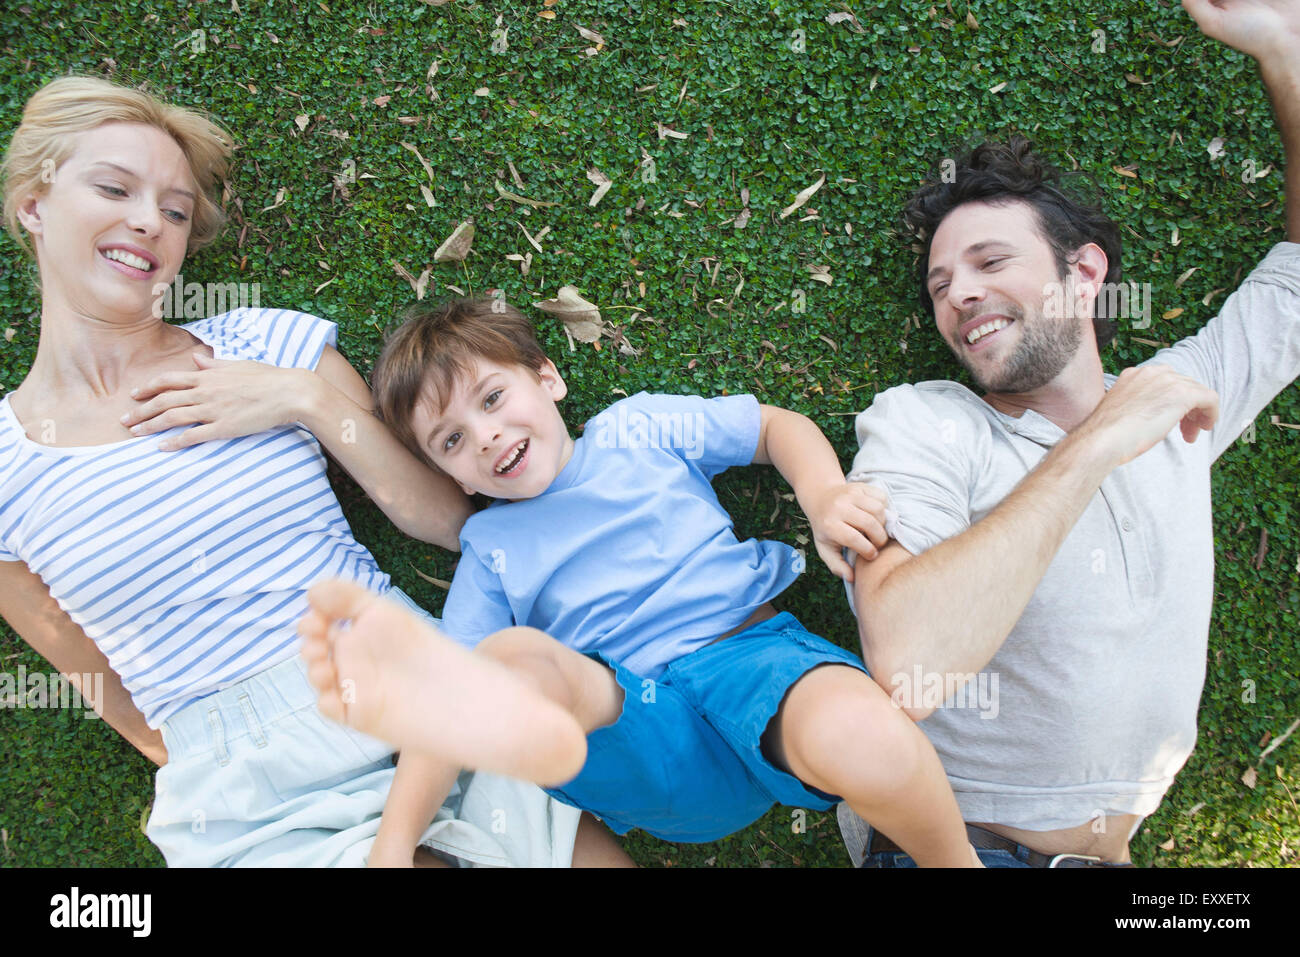 Young family enjoying carefree afternoon playing together - Stock Image